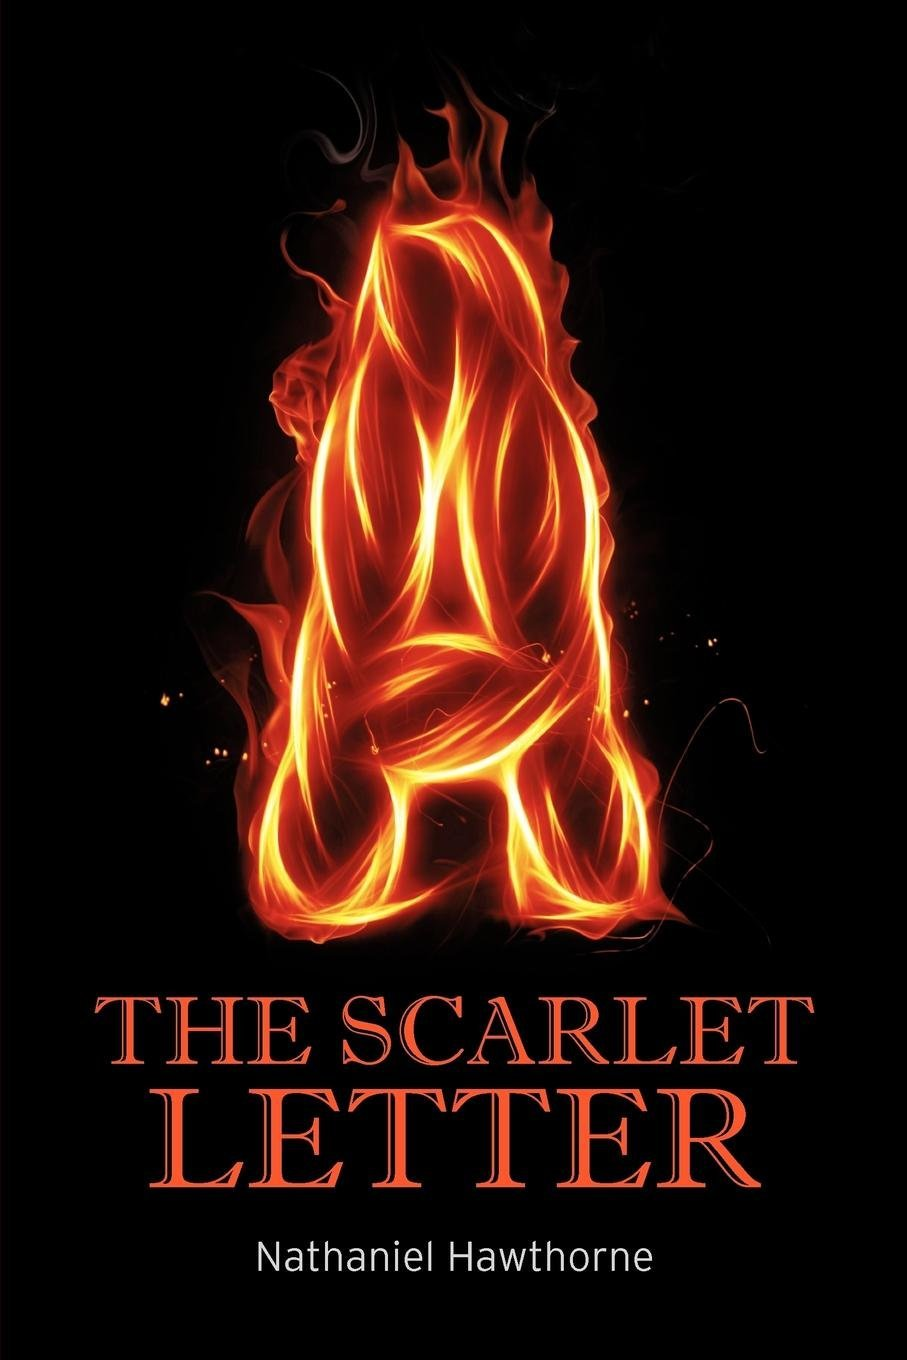 a response to the scarlet letter by nathaniel hawthorne Amazoncom: the critical response to nathaniel hawthorne's the scarlet letter: (critical responses in arts and letters) (9780313275999): gary scharnhorst: books.